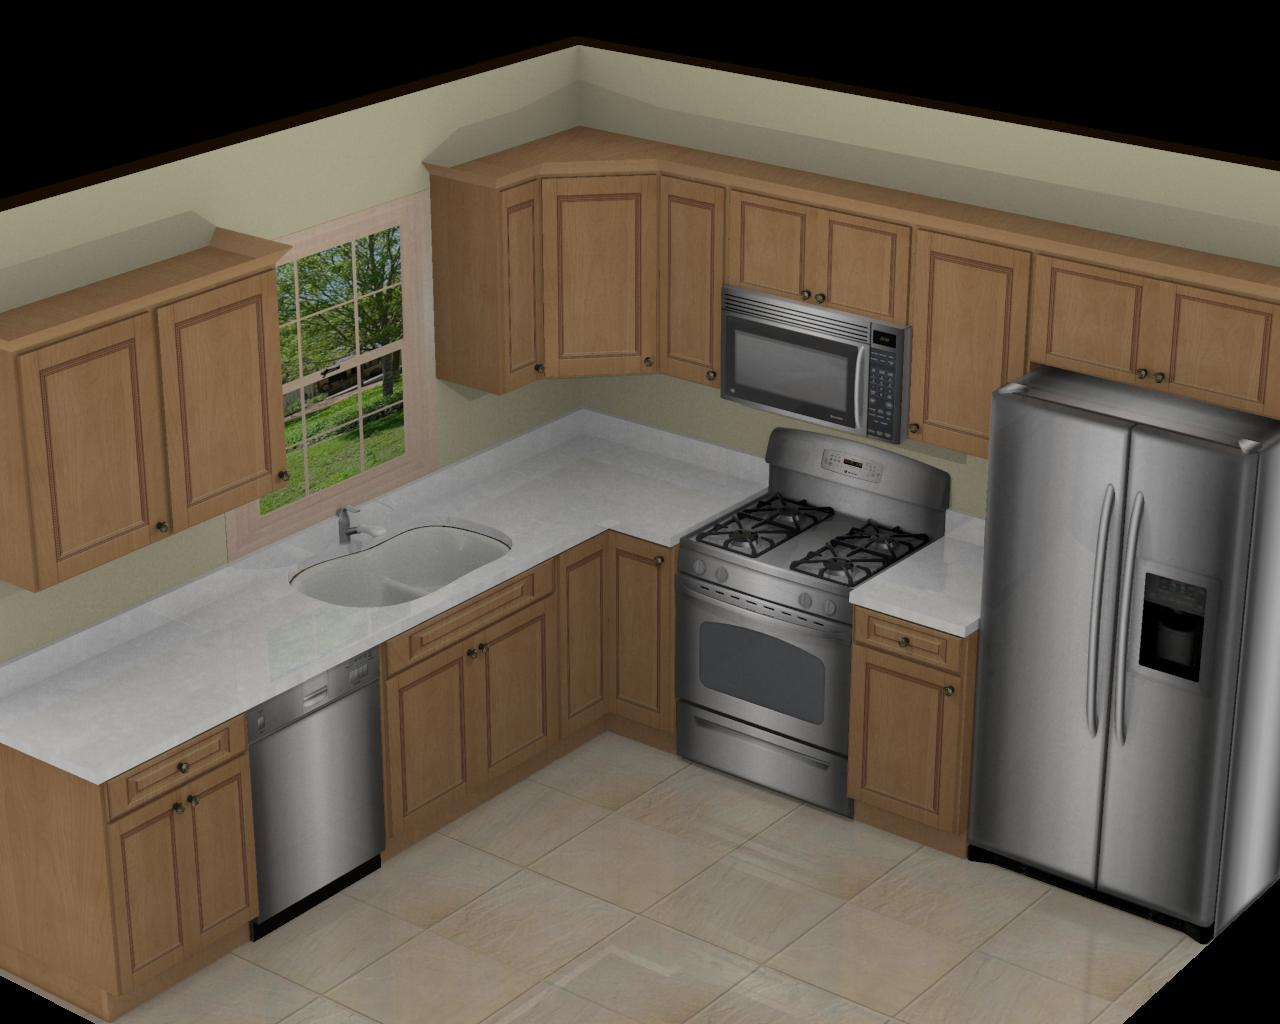 Foundation dezin decor 3d kitchen model design for Remodel my kitchen ideas